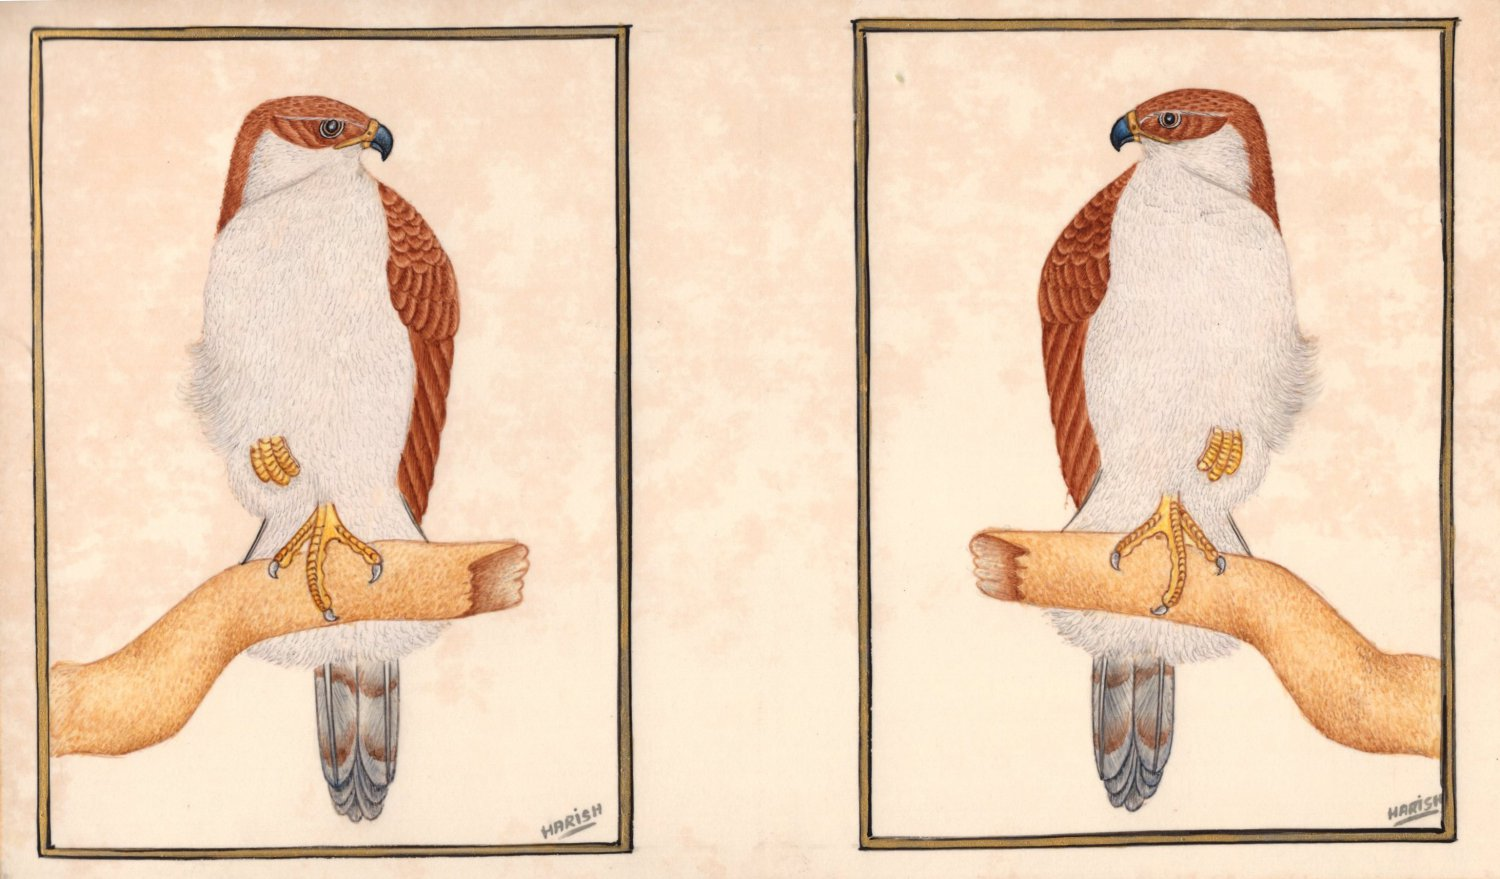 Eagle Bird of Prey Art Handmade Indian Miniature Watercolor Ornithology Painting